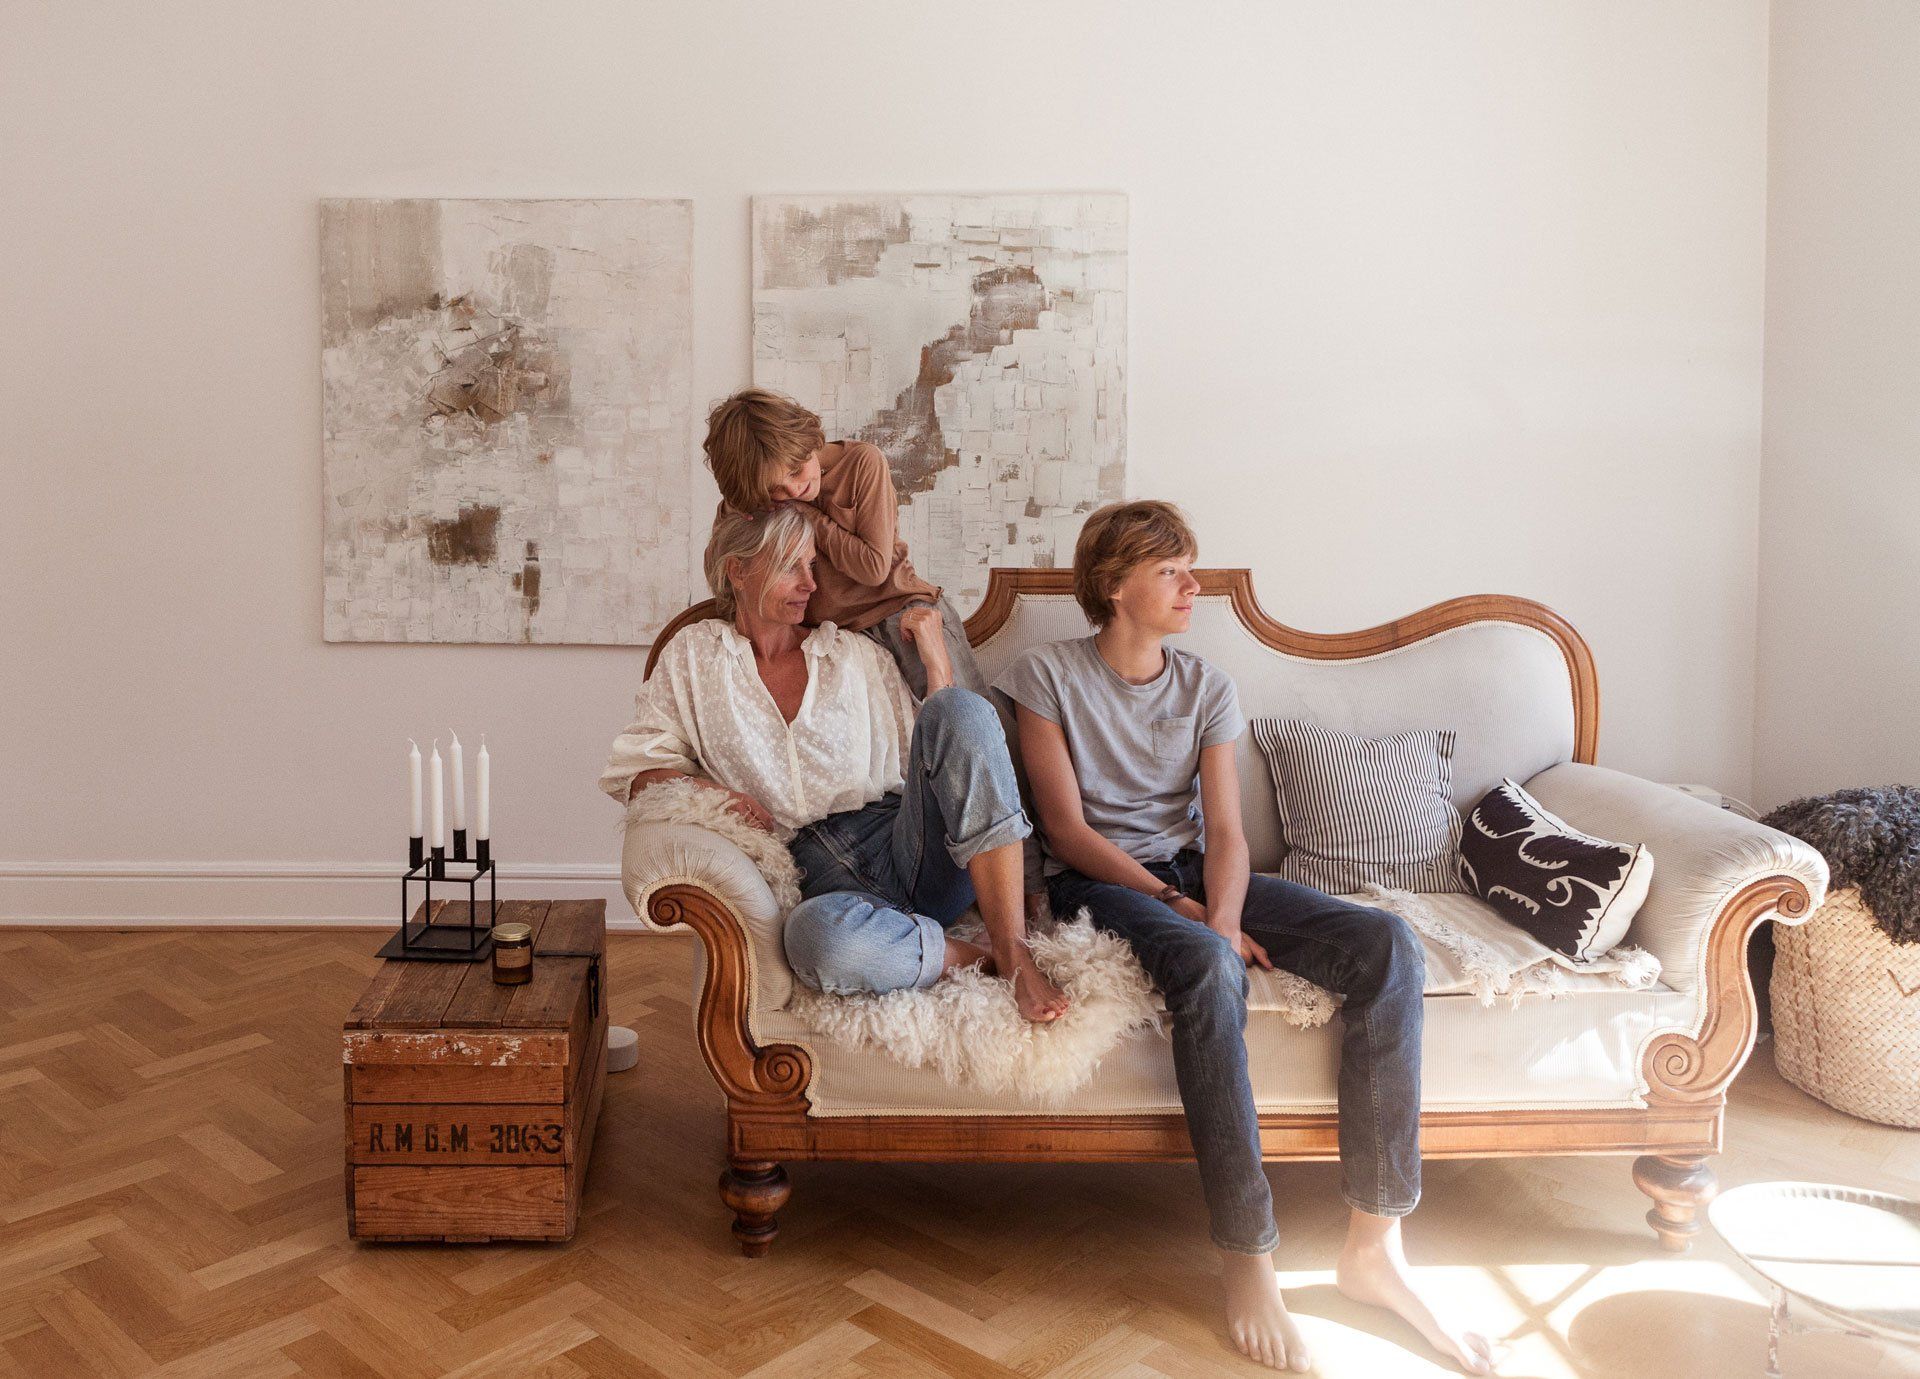 Irene de Klerk Wolters at home with her family